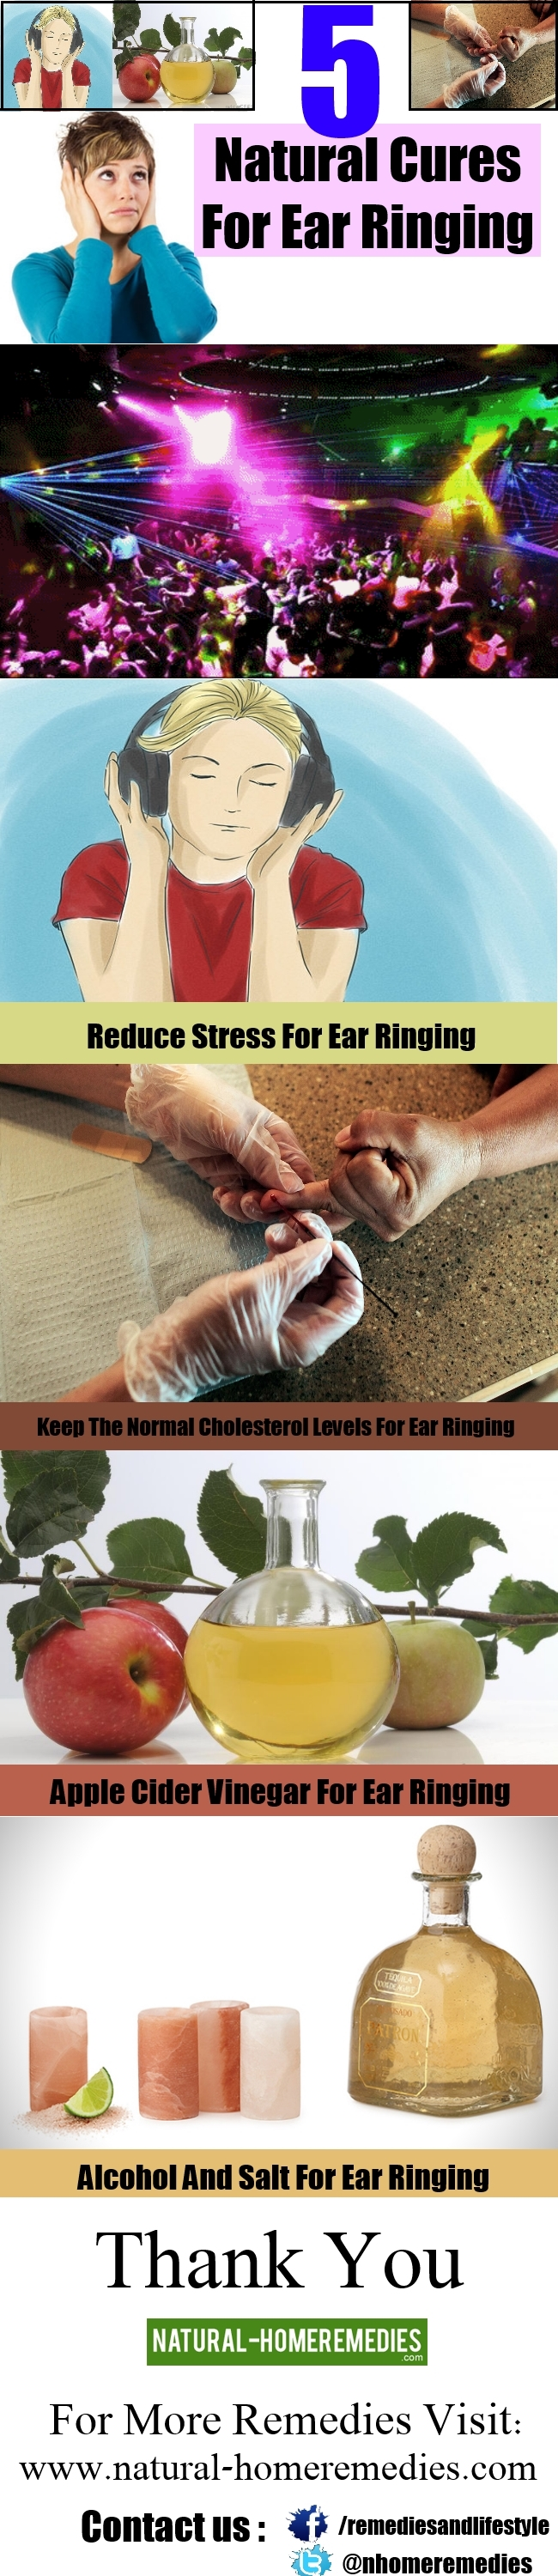 5 Natural Cures For Ear Ringing